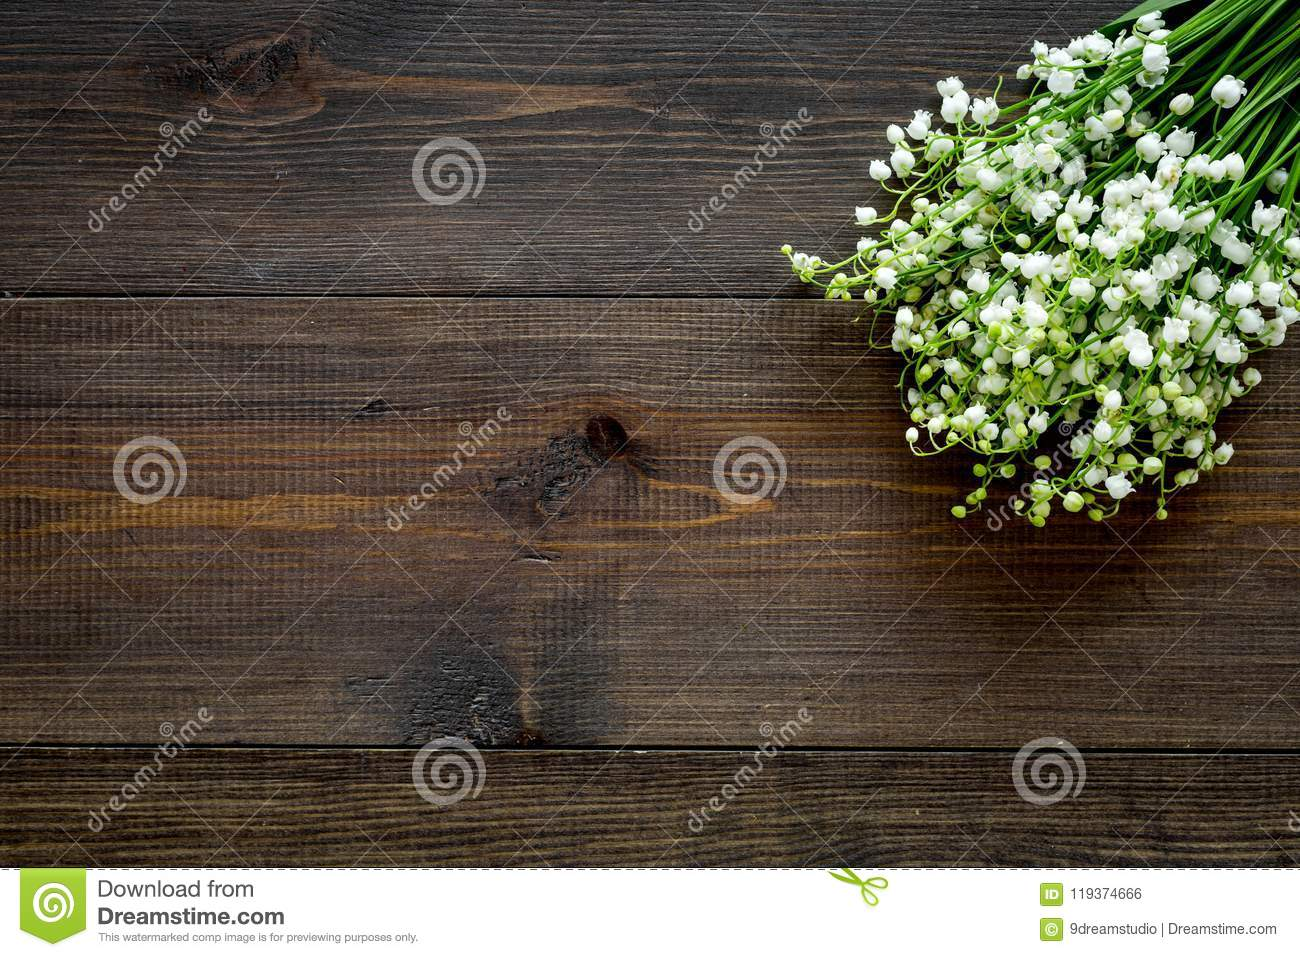 May flowers bouqet of lily of the valley flowers on dark wooden may flowers bouqet of lily of the valley flowers on dark wooden background top view izmirmasajfo